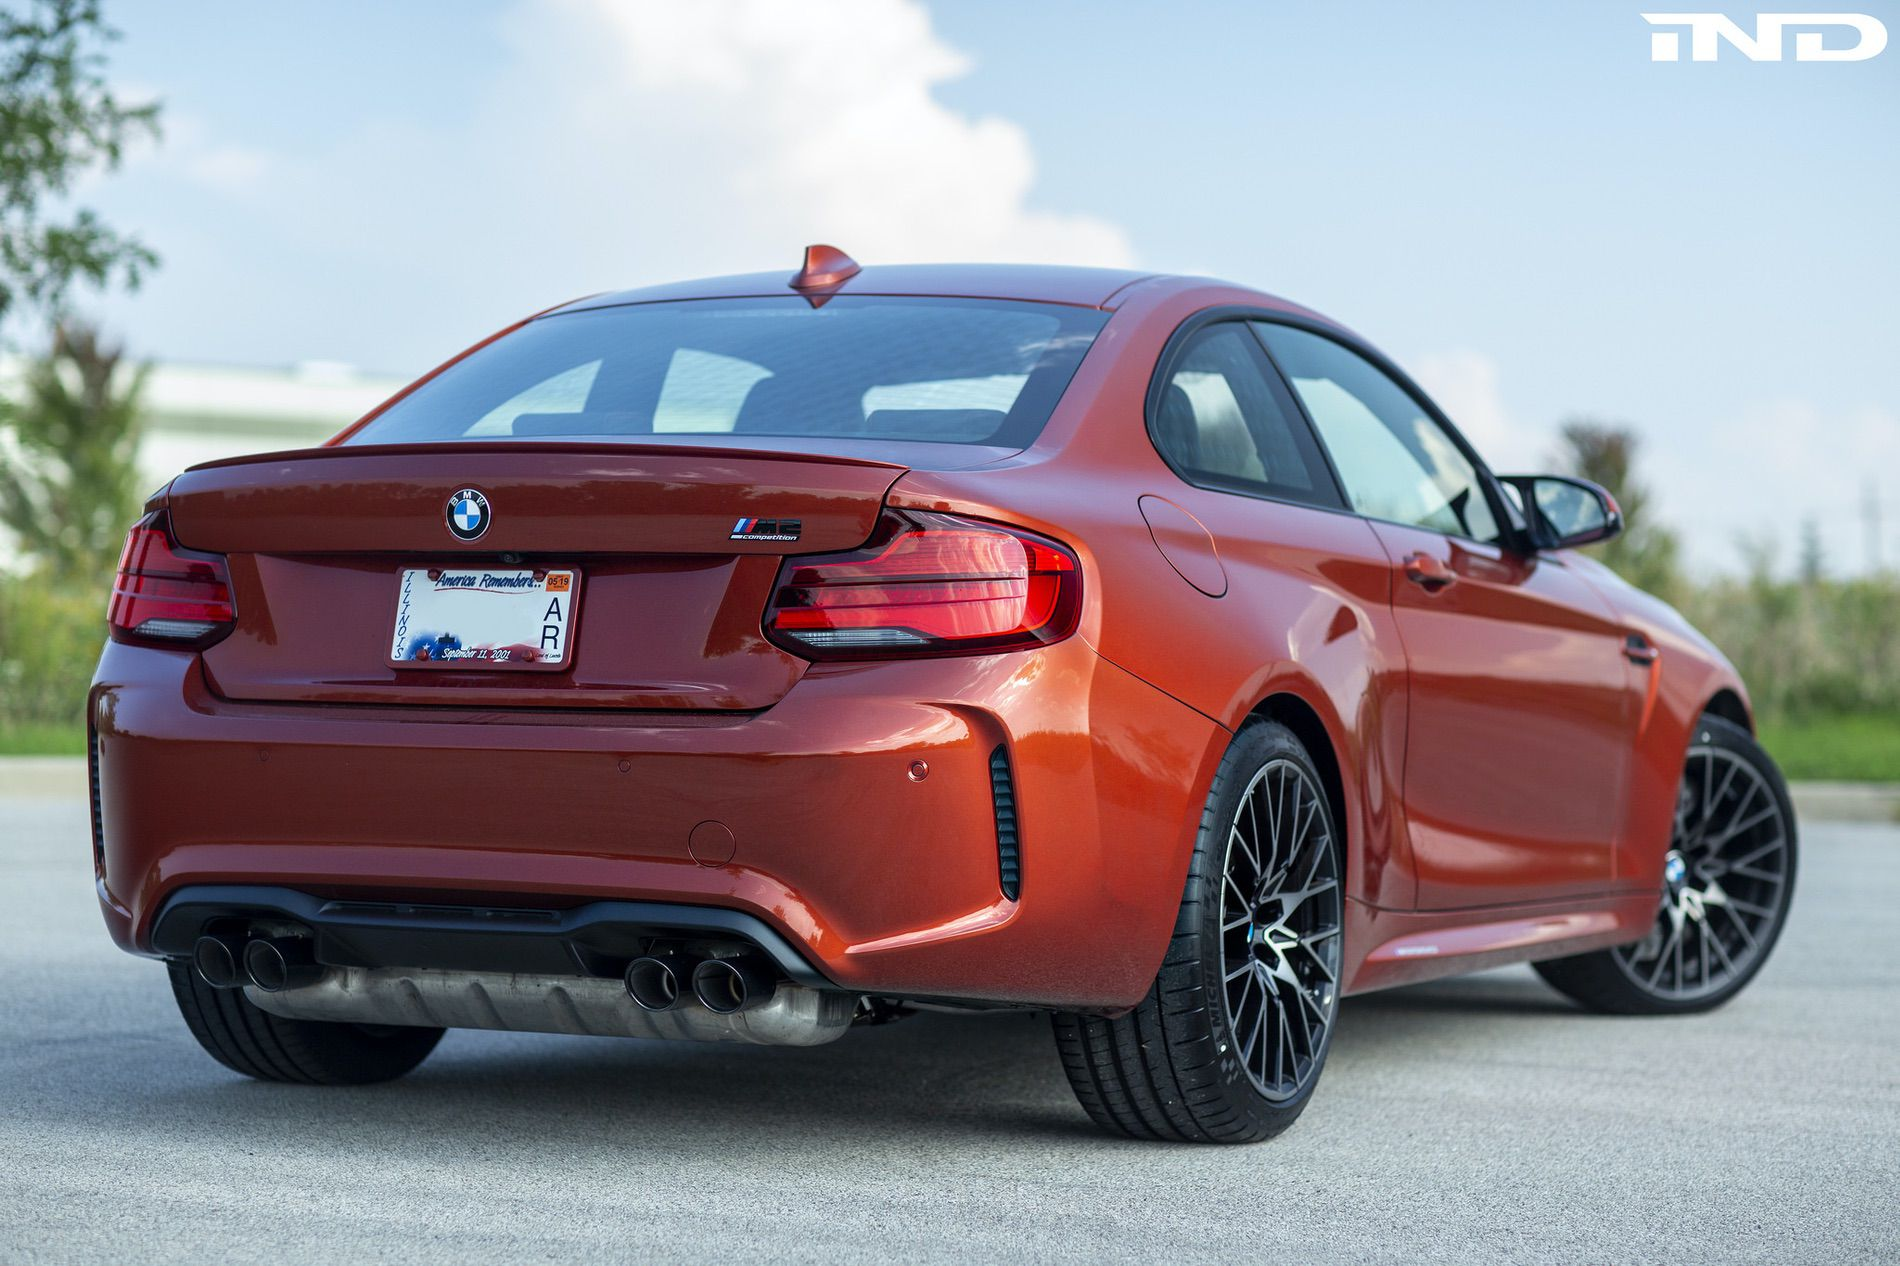 Bmw M2 Competition In Sunset Orange Sosialpolitik 1970 Camaro Wiring Diagram Android Apps On Google Play Active Sound Is Not Nearly As Intrusive The M2c It Was My Og Dare I Say You Could Even Leave